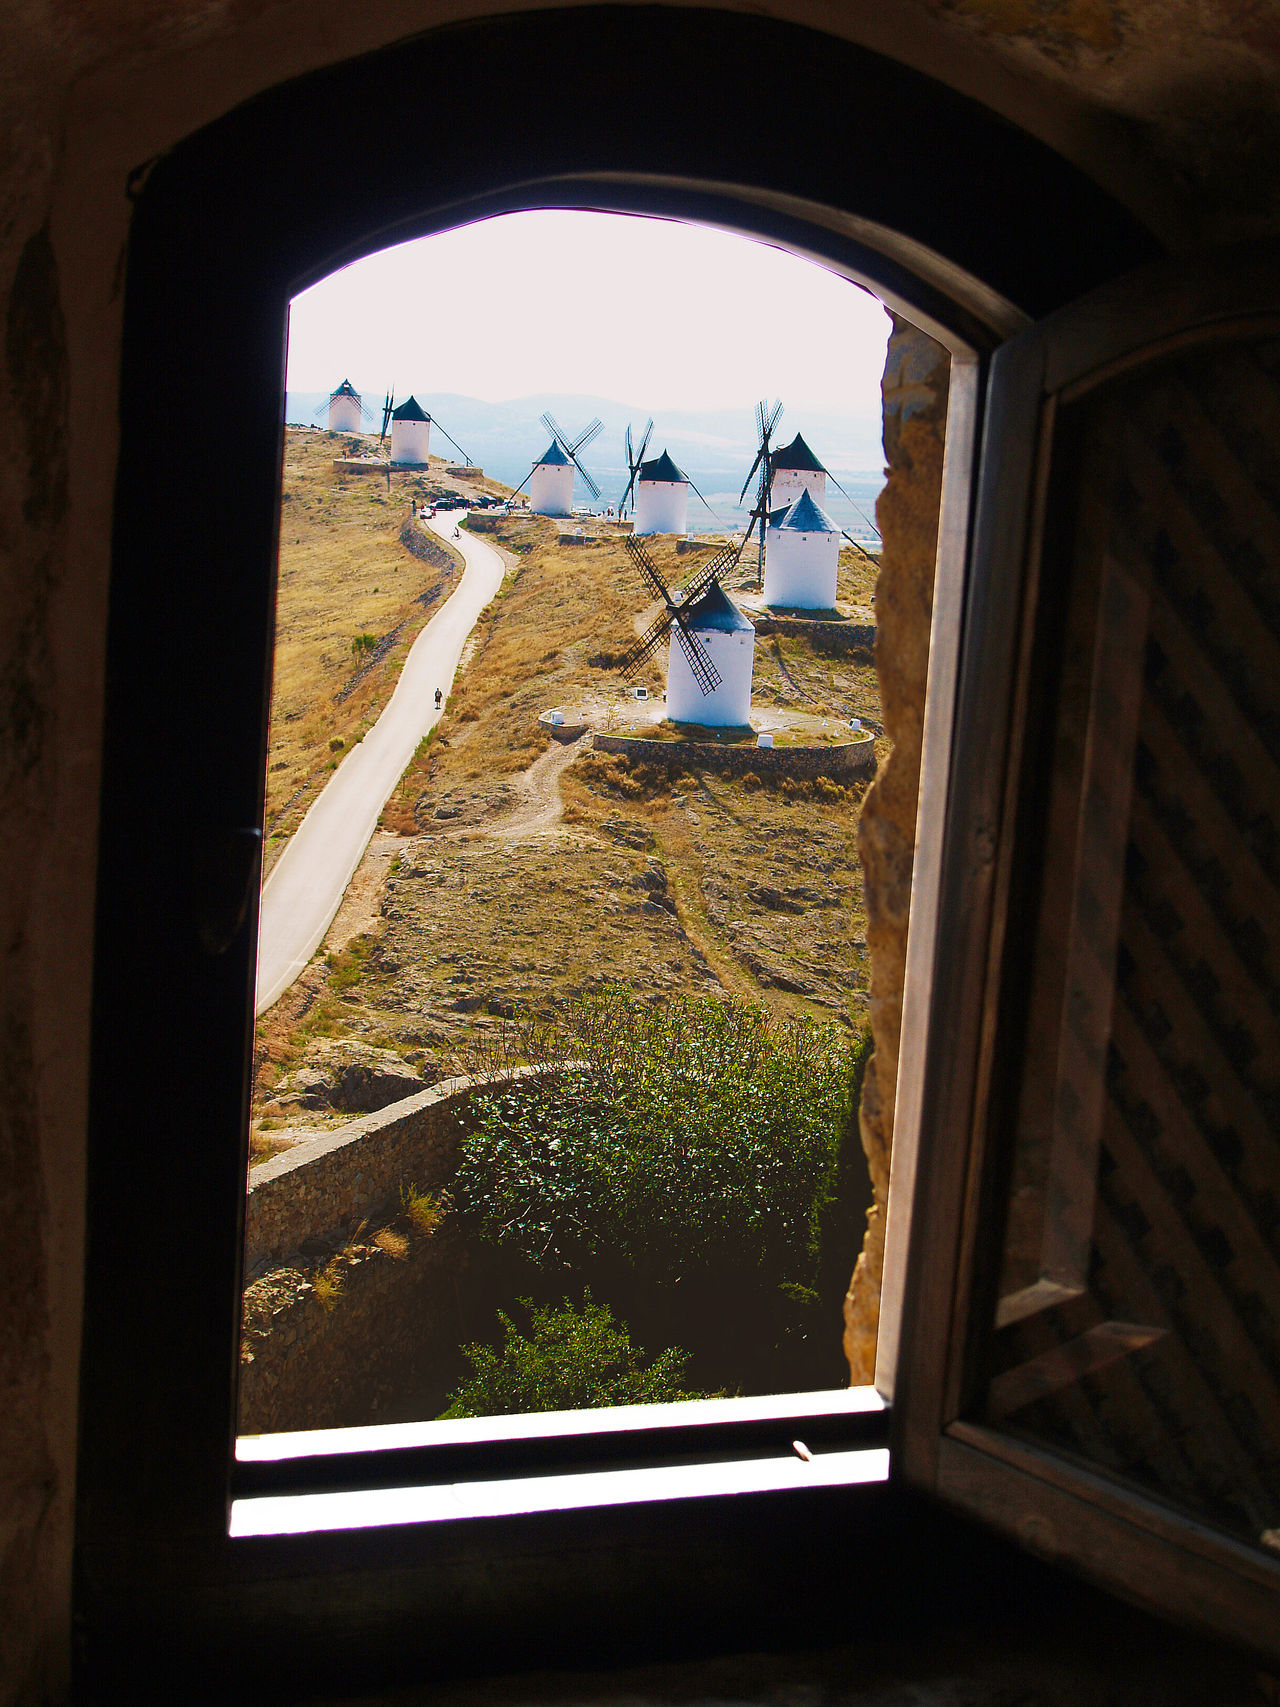 Windmills through a window Arch Clear Sky Day Flying Glass - Material Green Color Growth In Front Of Indoors  La Mancha Landscape Lawn Nature Quijote Sky SPAIN Tranquility Transparent Windmill Windmills Window